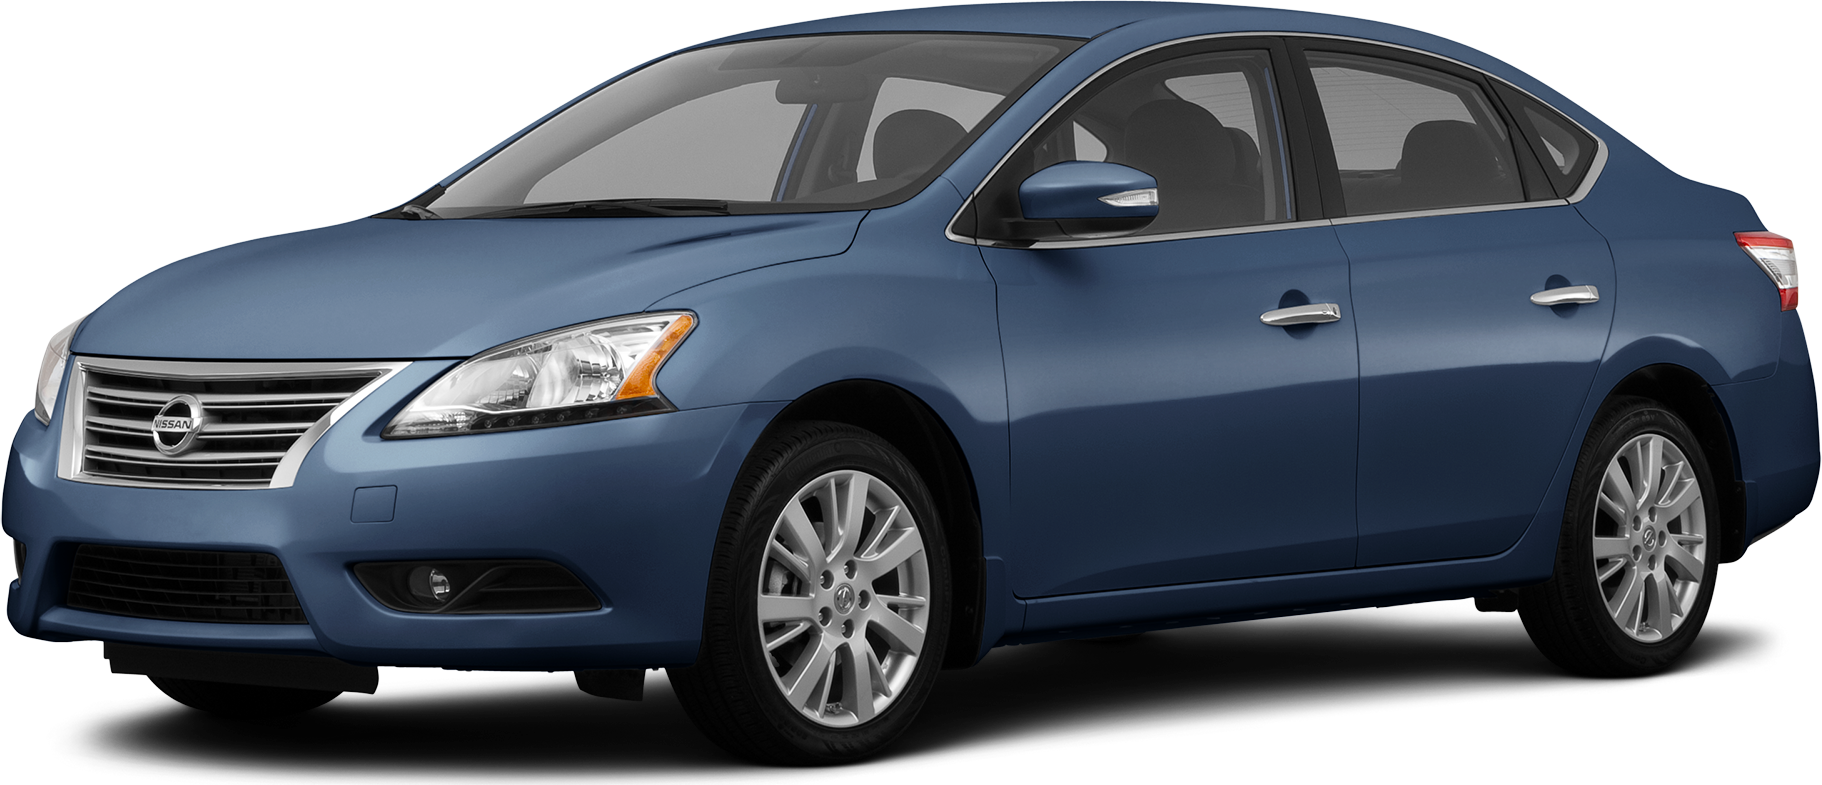 2013 Nissan Sentra Values Cars For Sale Kelley Blue Book